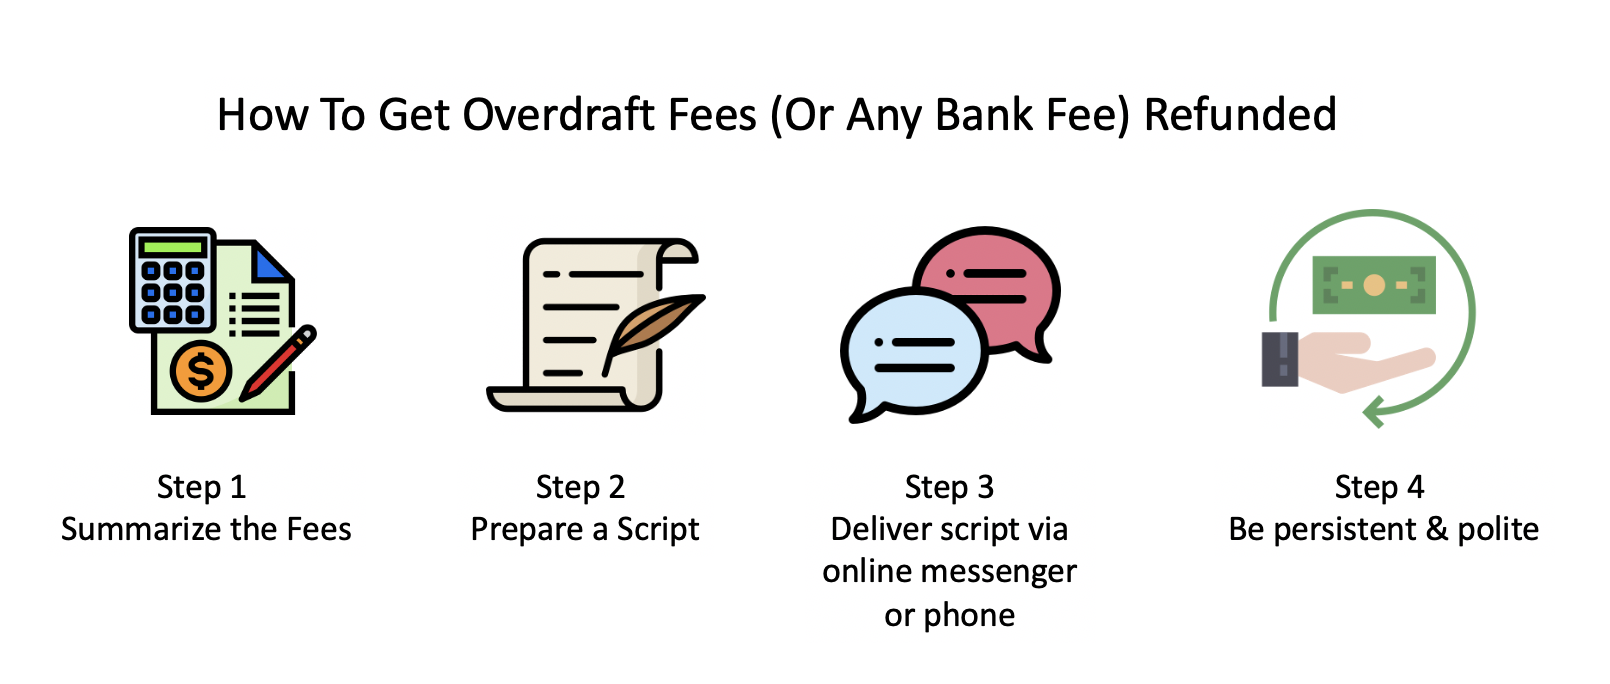 How to Get Overdraft Fees Refunded